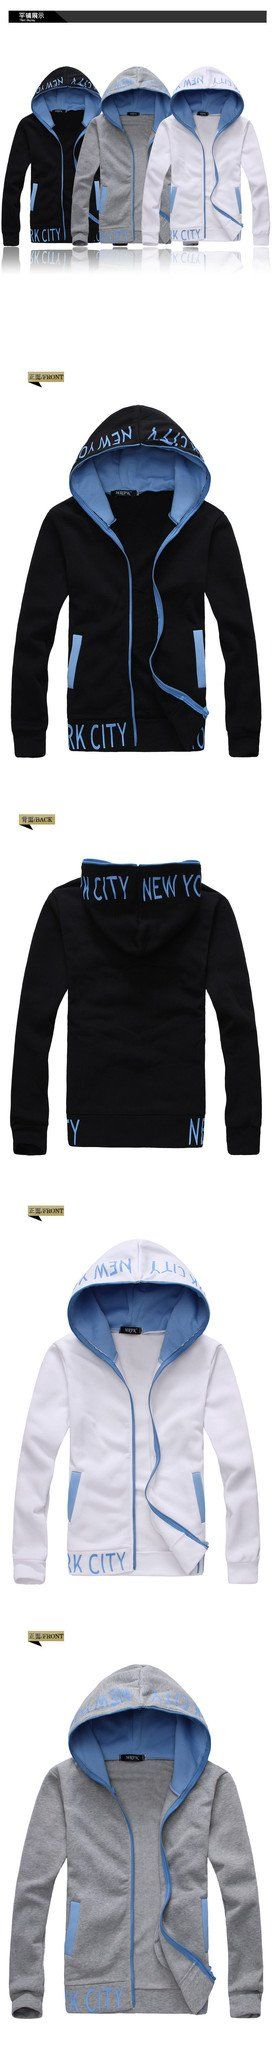 Men's Zip Up NYC Hoodie - TrendSettingFashions